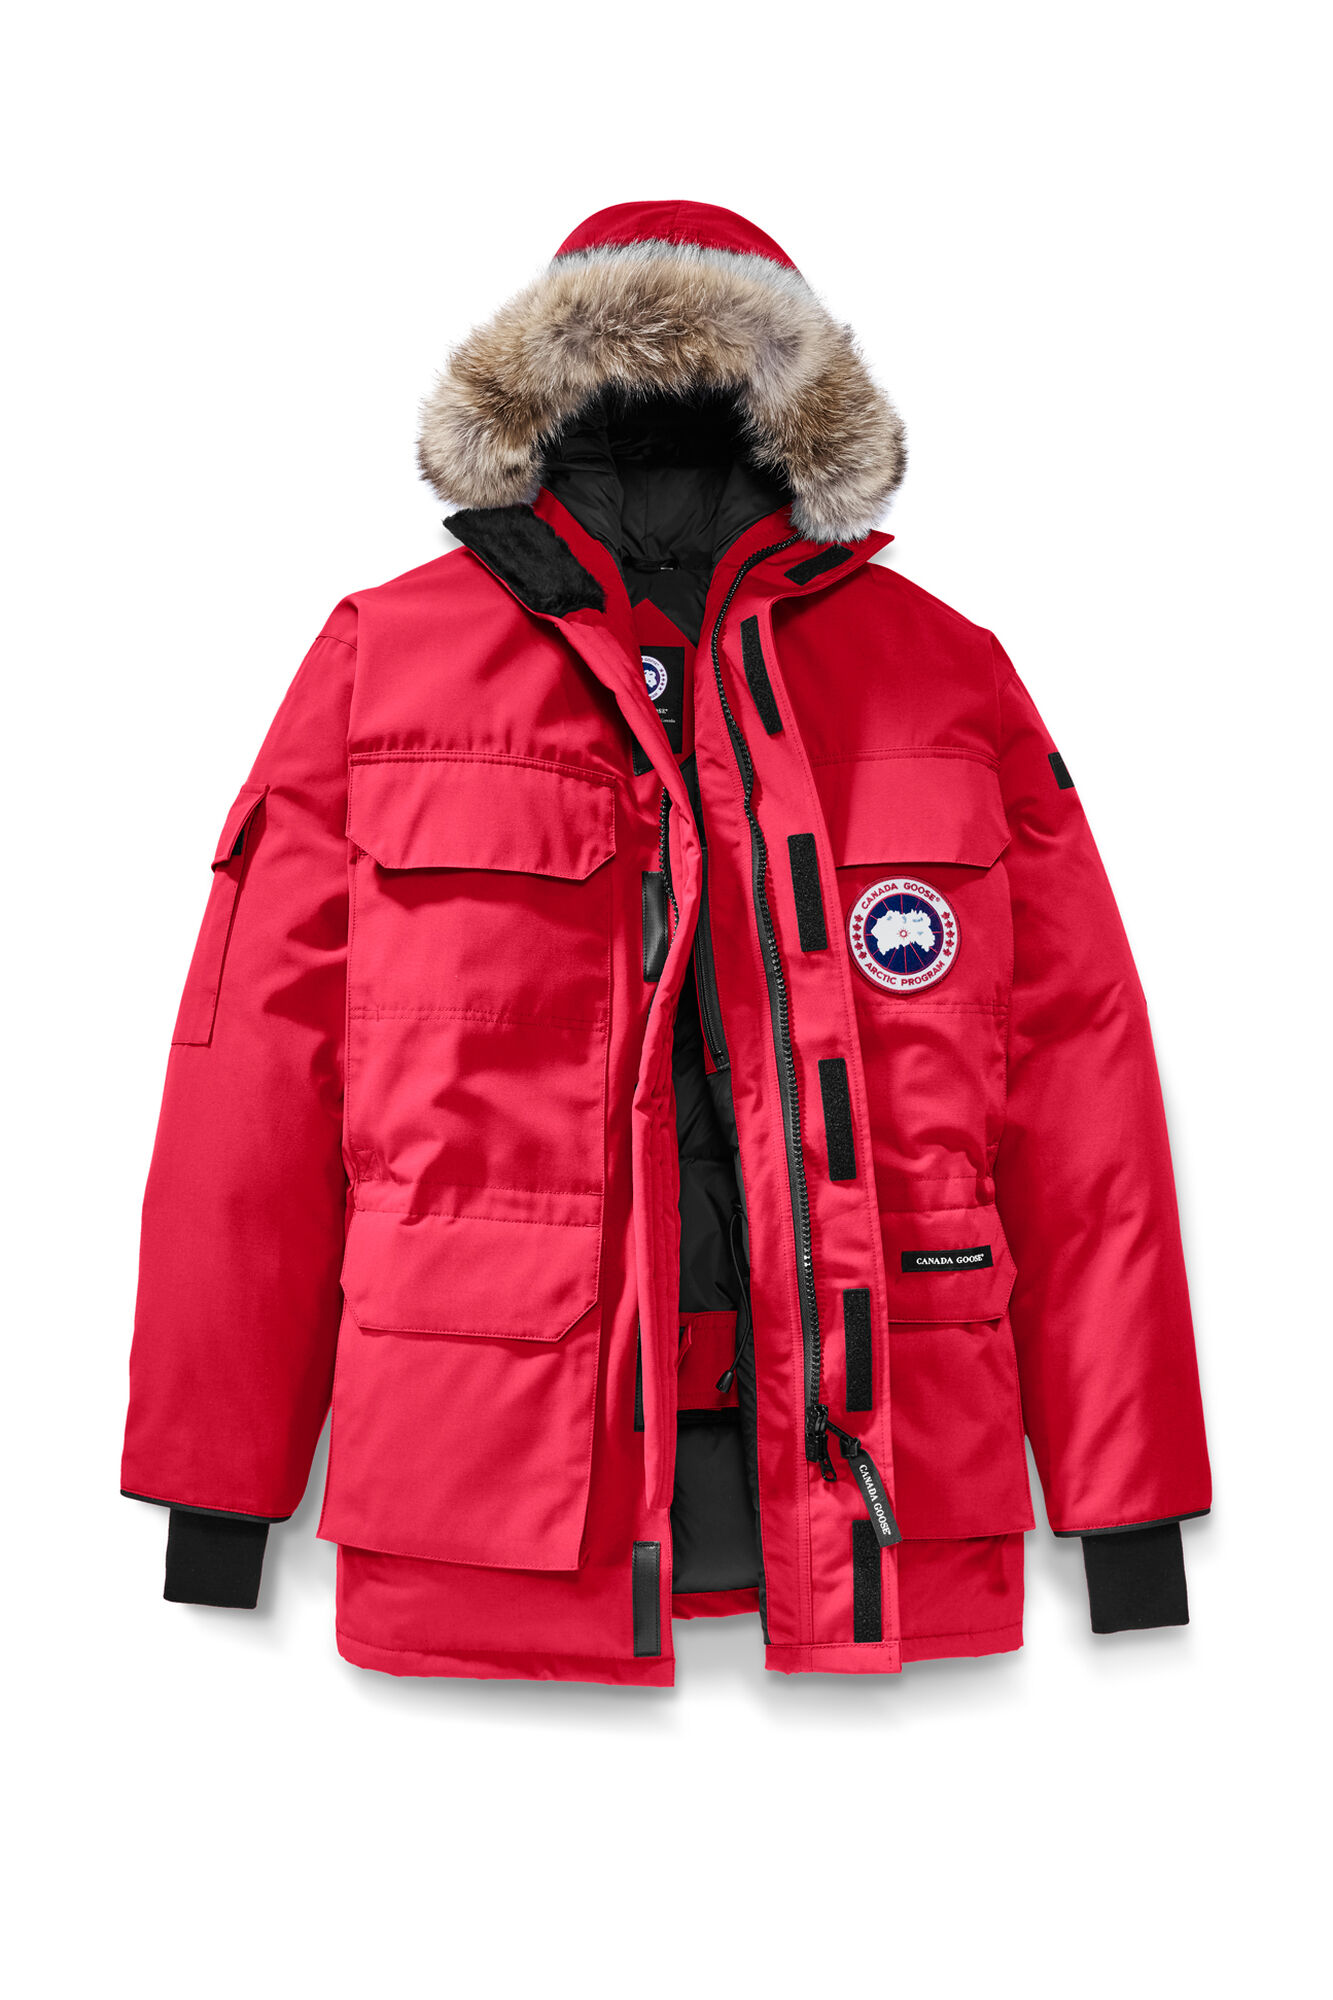 Canada Goose toronto online store - Men's Arctic Program Expedition Parka | Canada Goose?